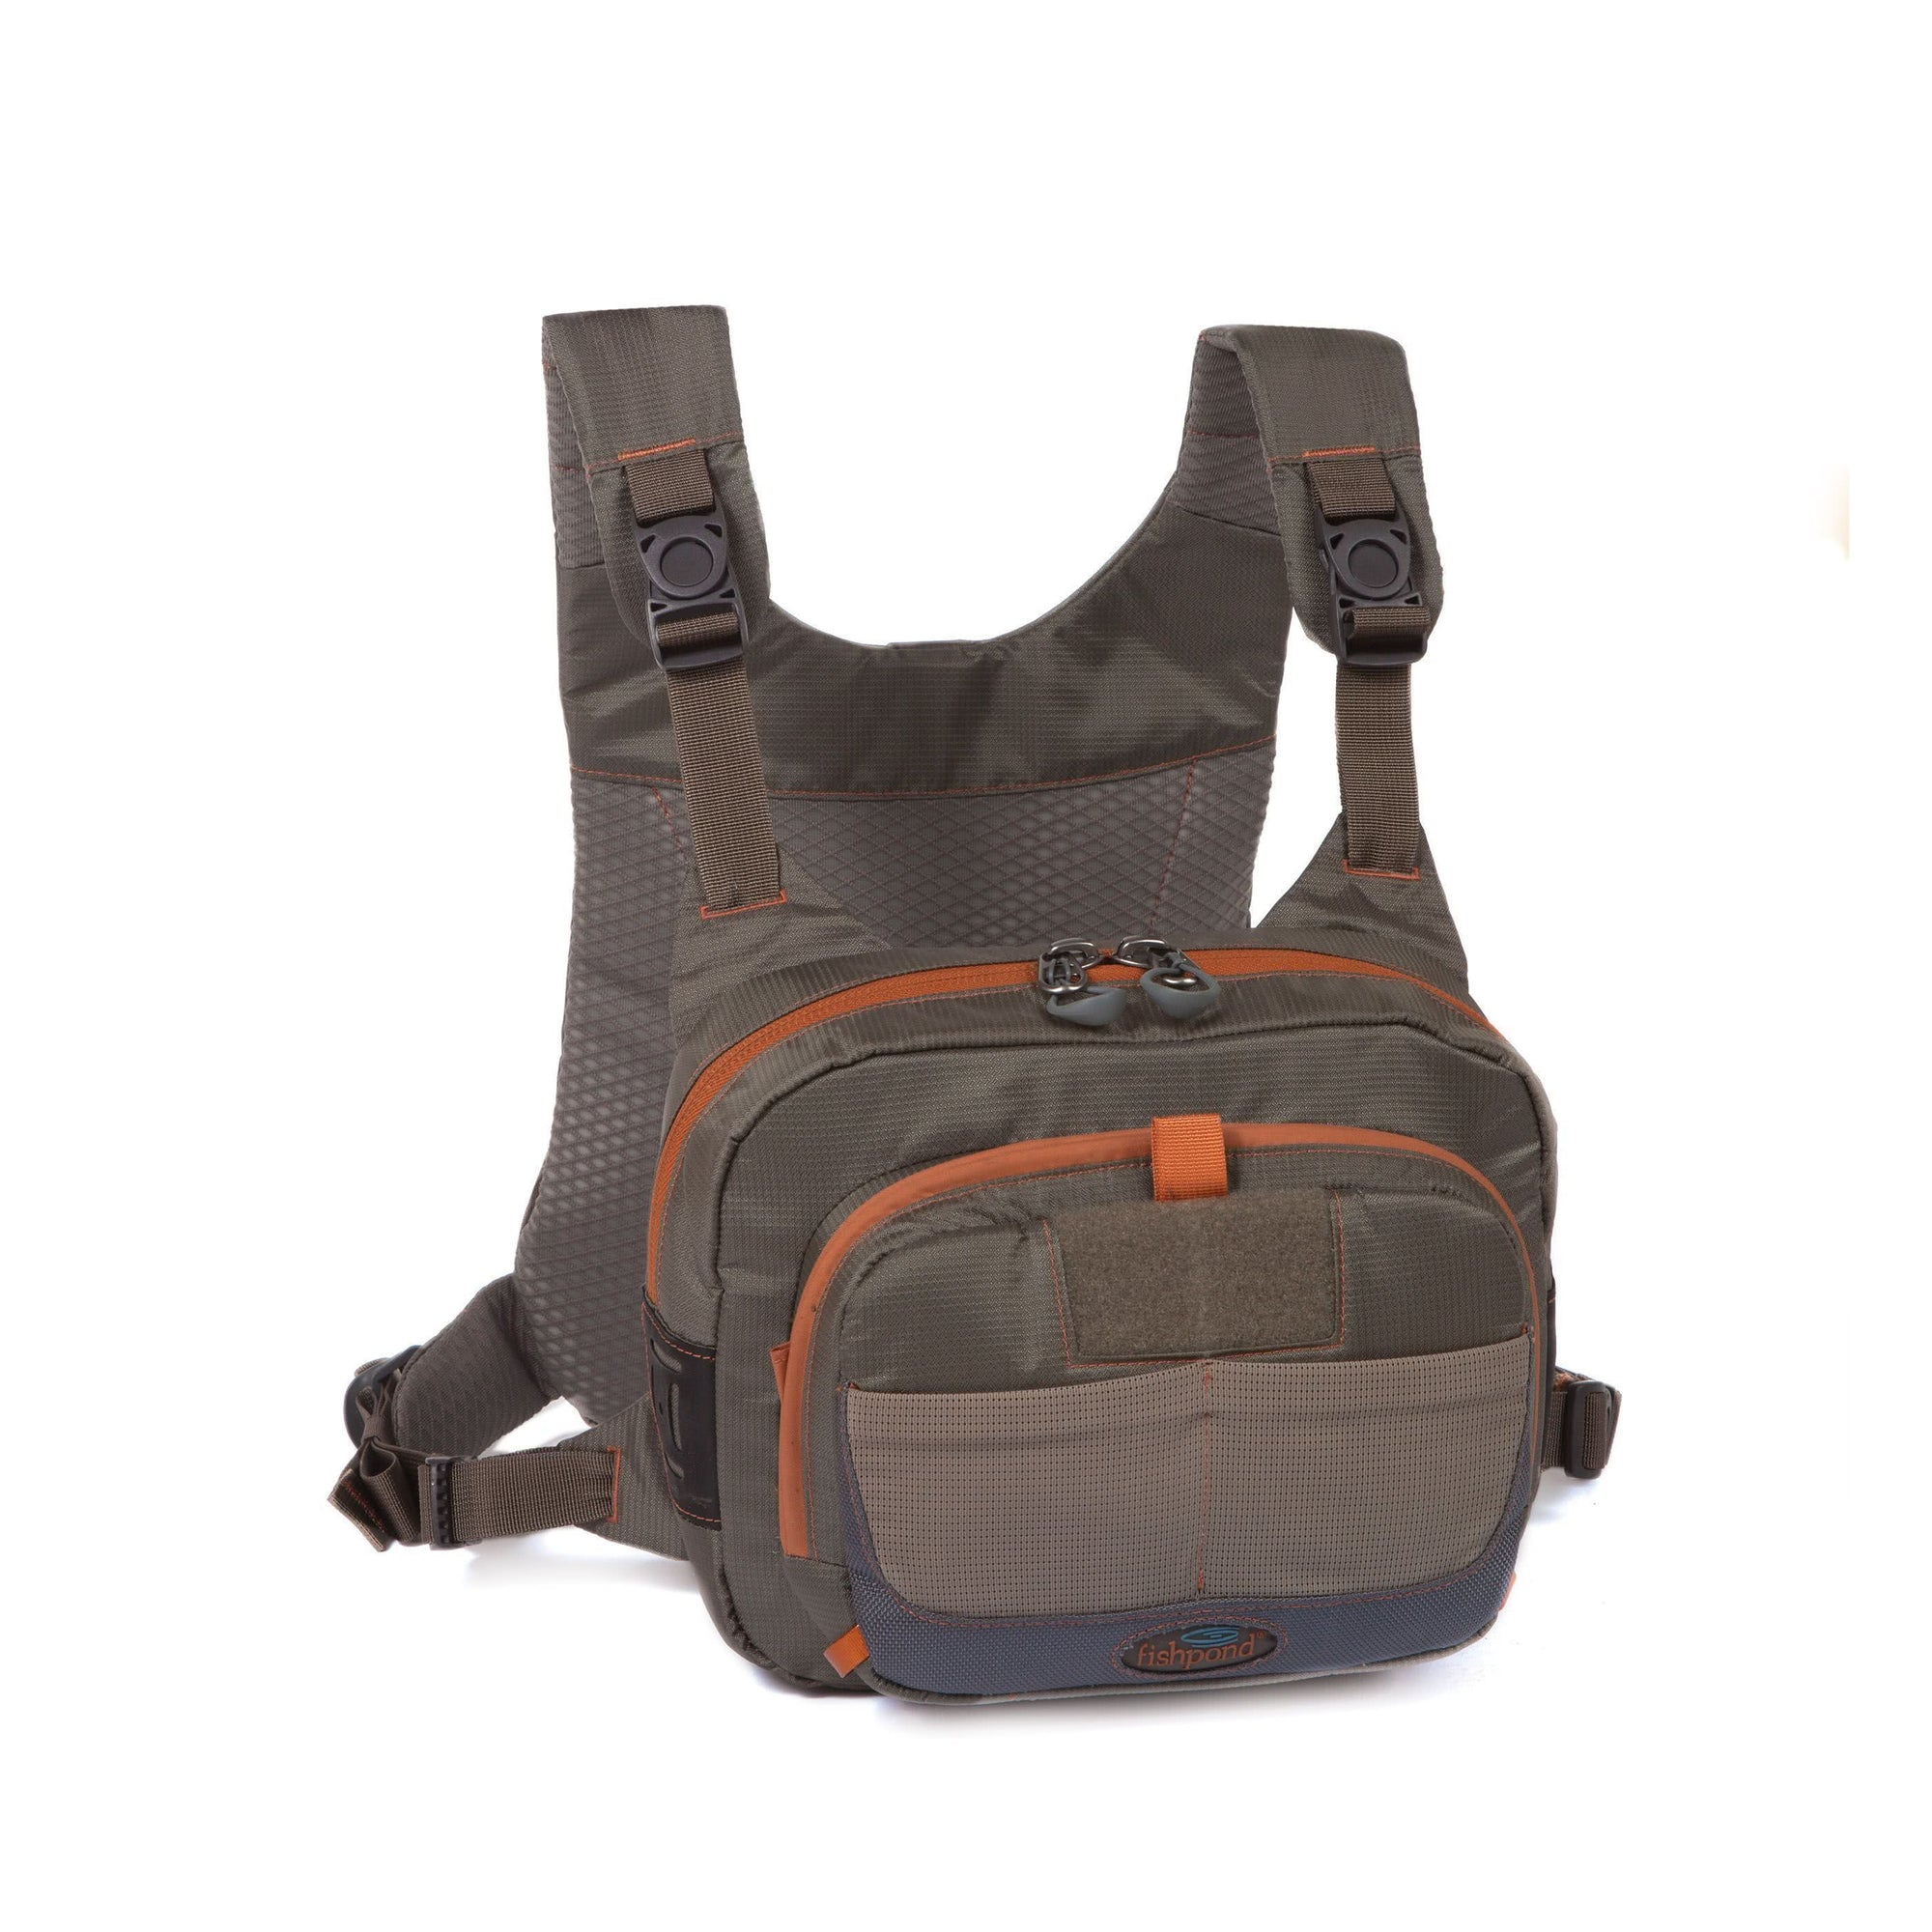 Fishpond Cross Current Chest Pack Front